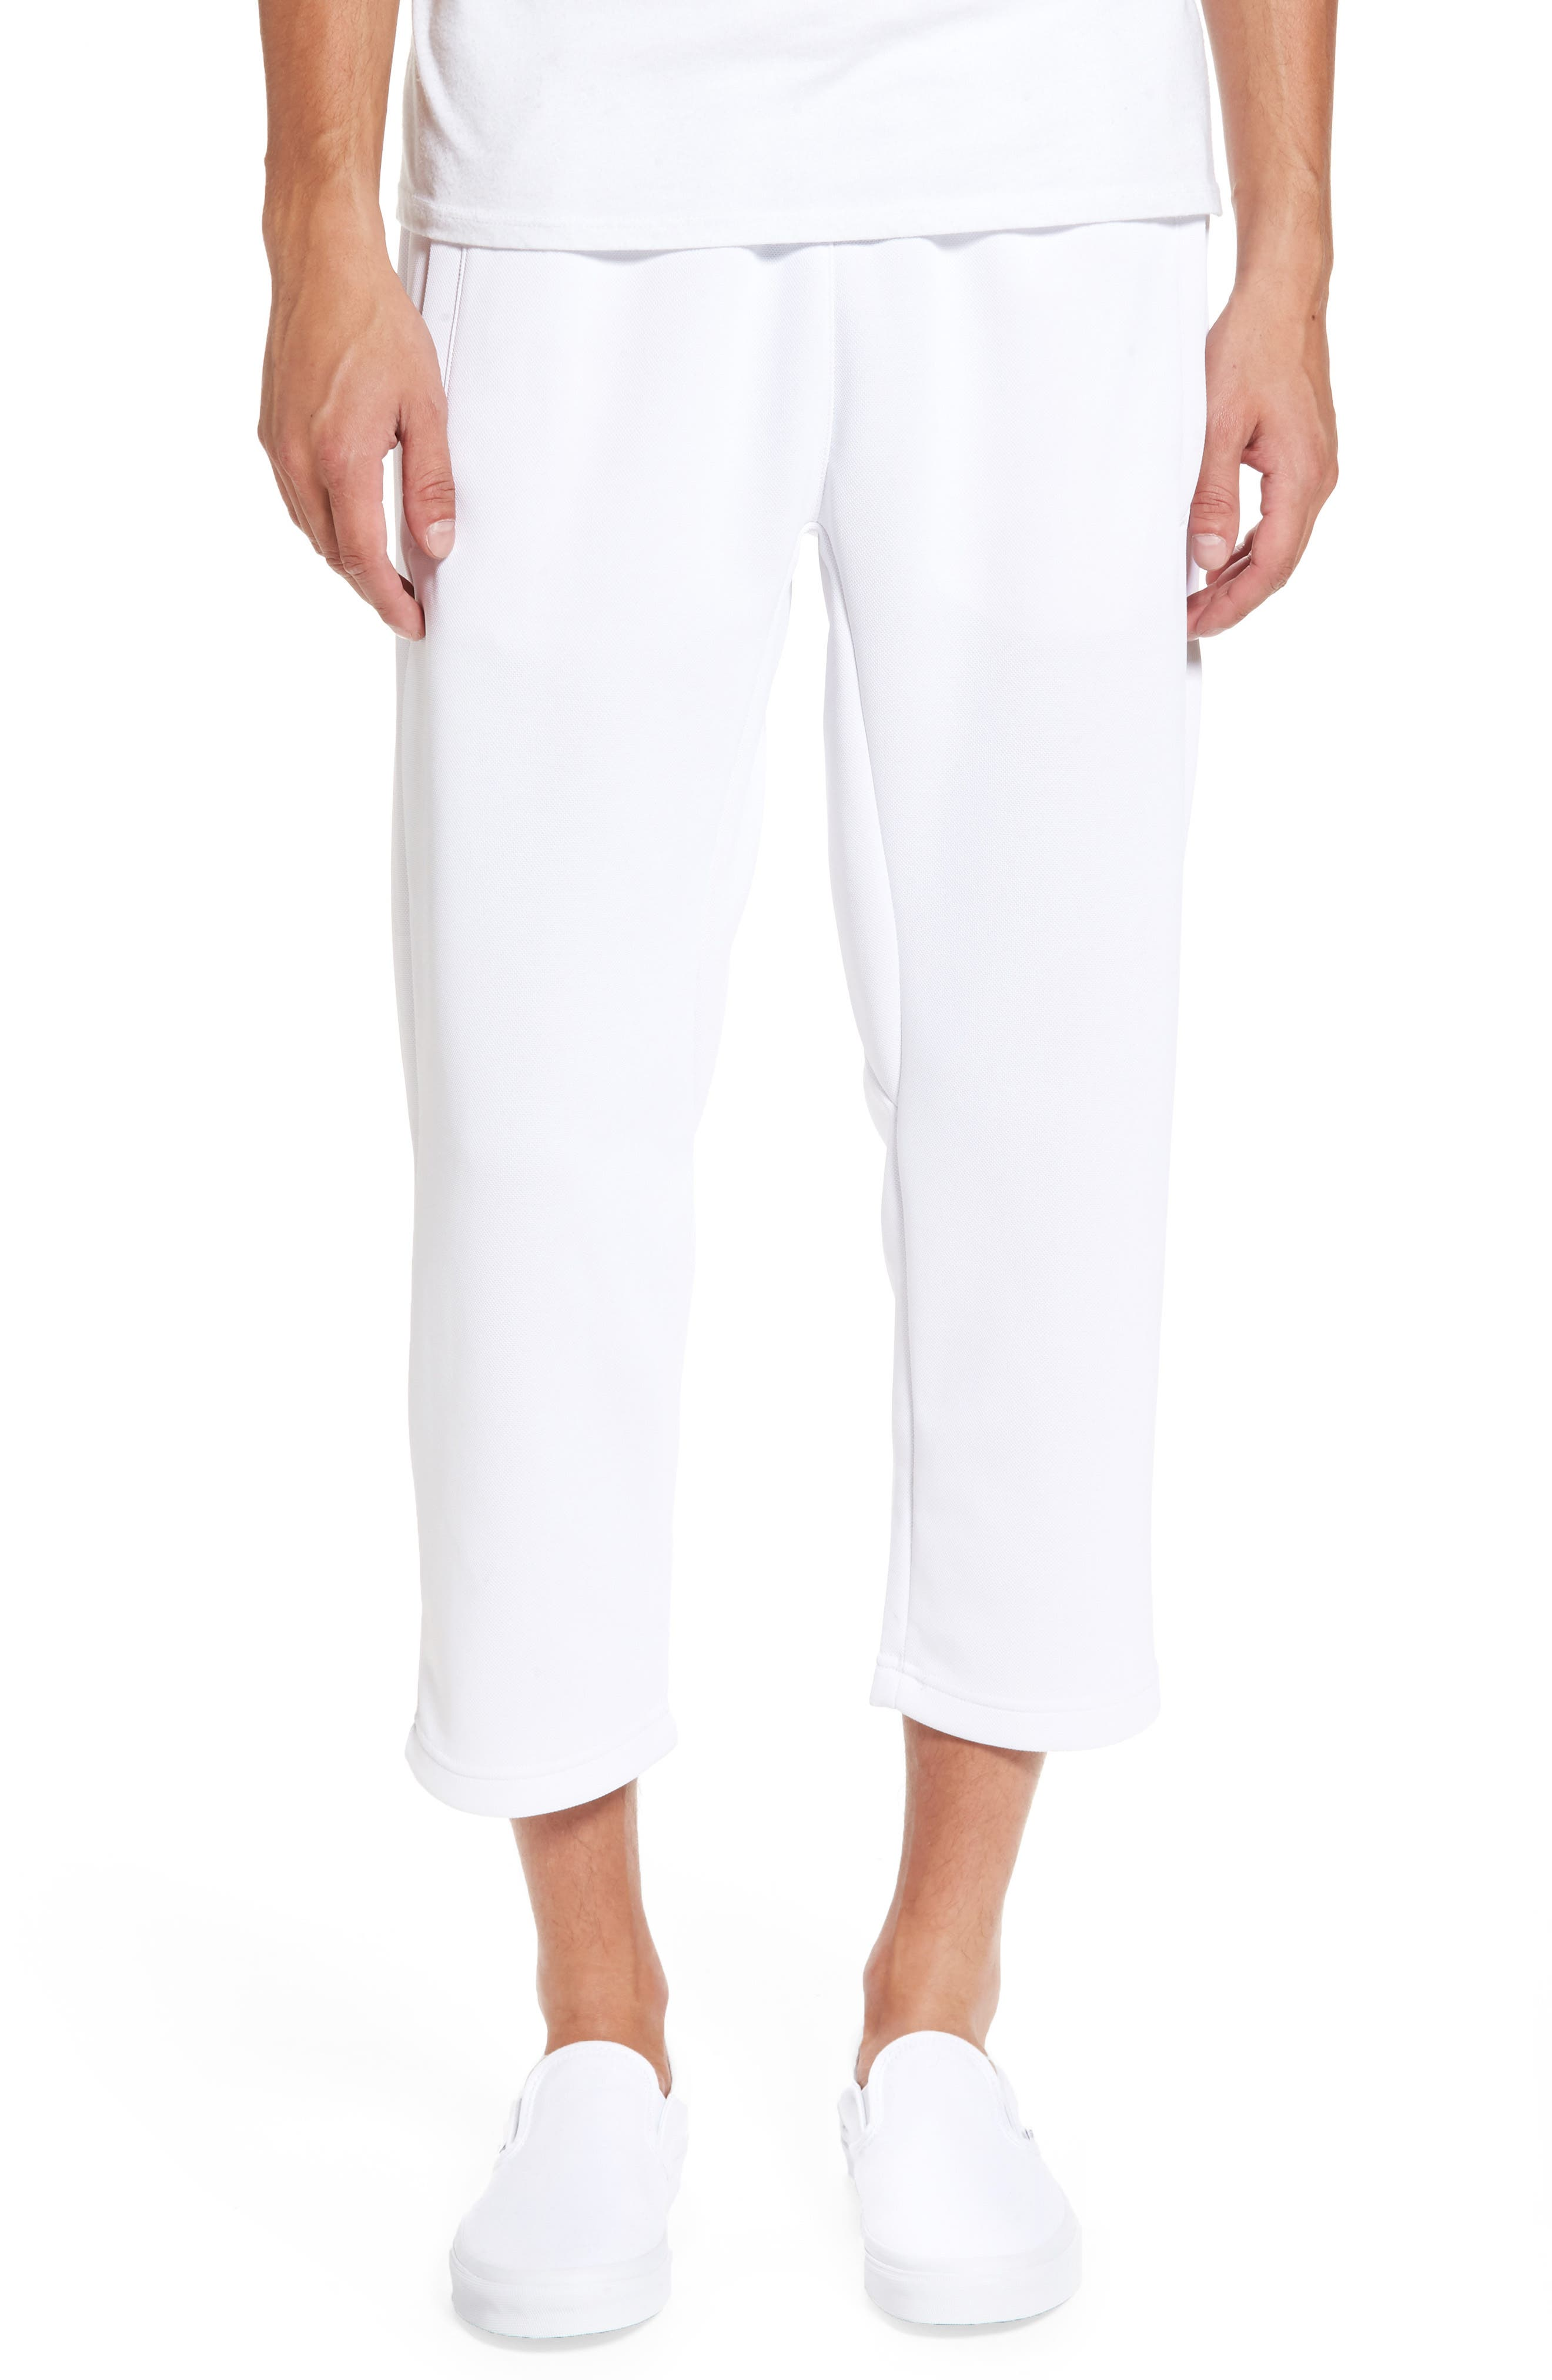 adidas Originals Hawthorne Crop Pants